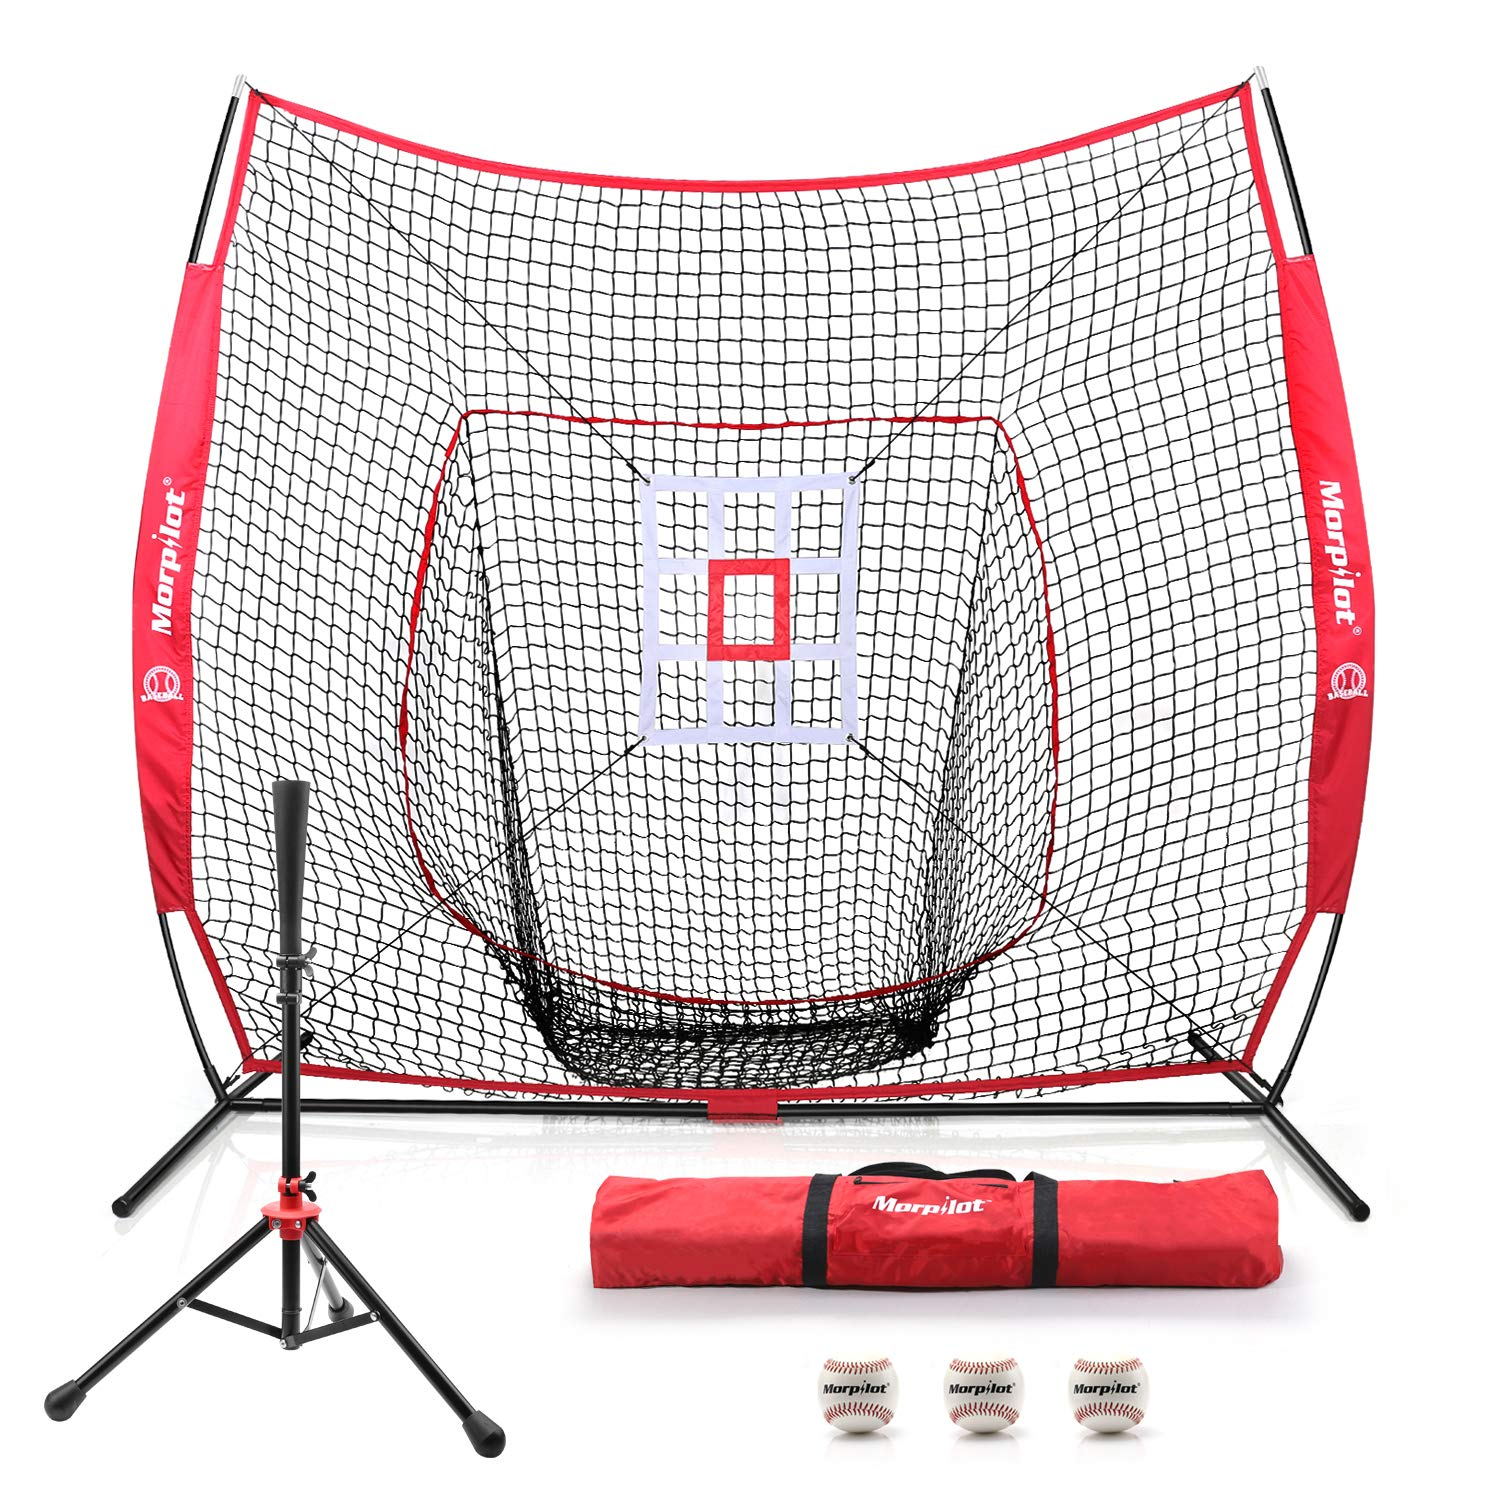 Keenstone 7'×7' Baseball Softball Practice Net | Hitting, Pitching, Batting, Catching, Fielding | with Batting Tee, 3 Training Balls, Strike Zone Target, and Carry Bag by Keenstone